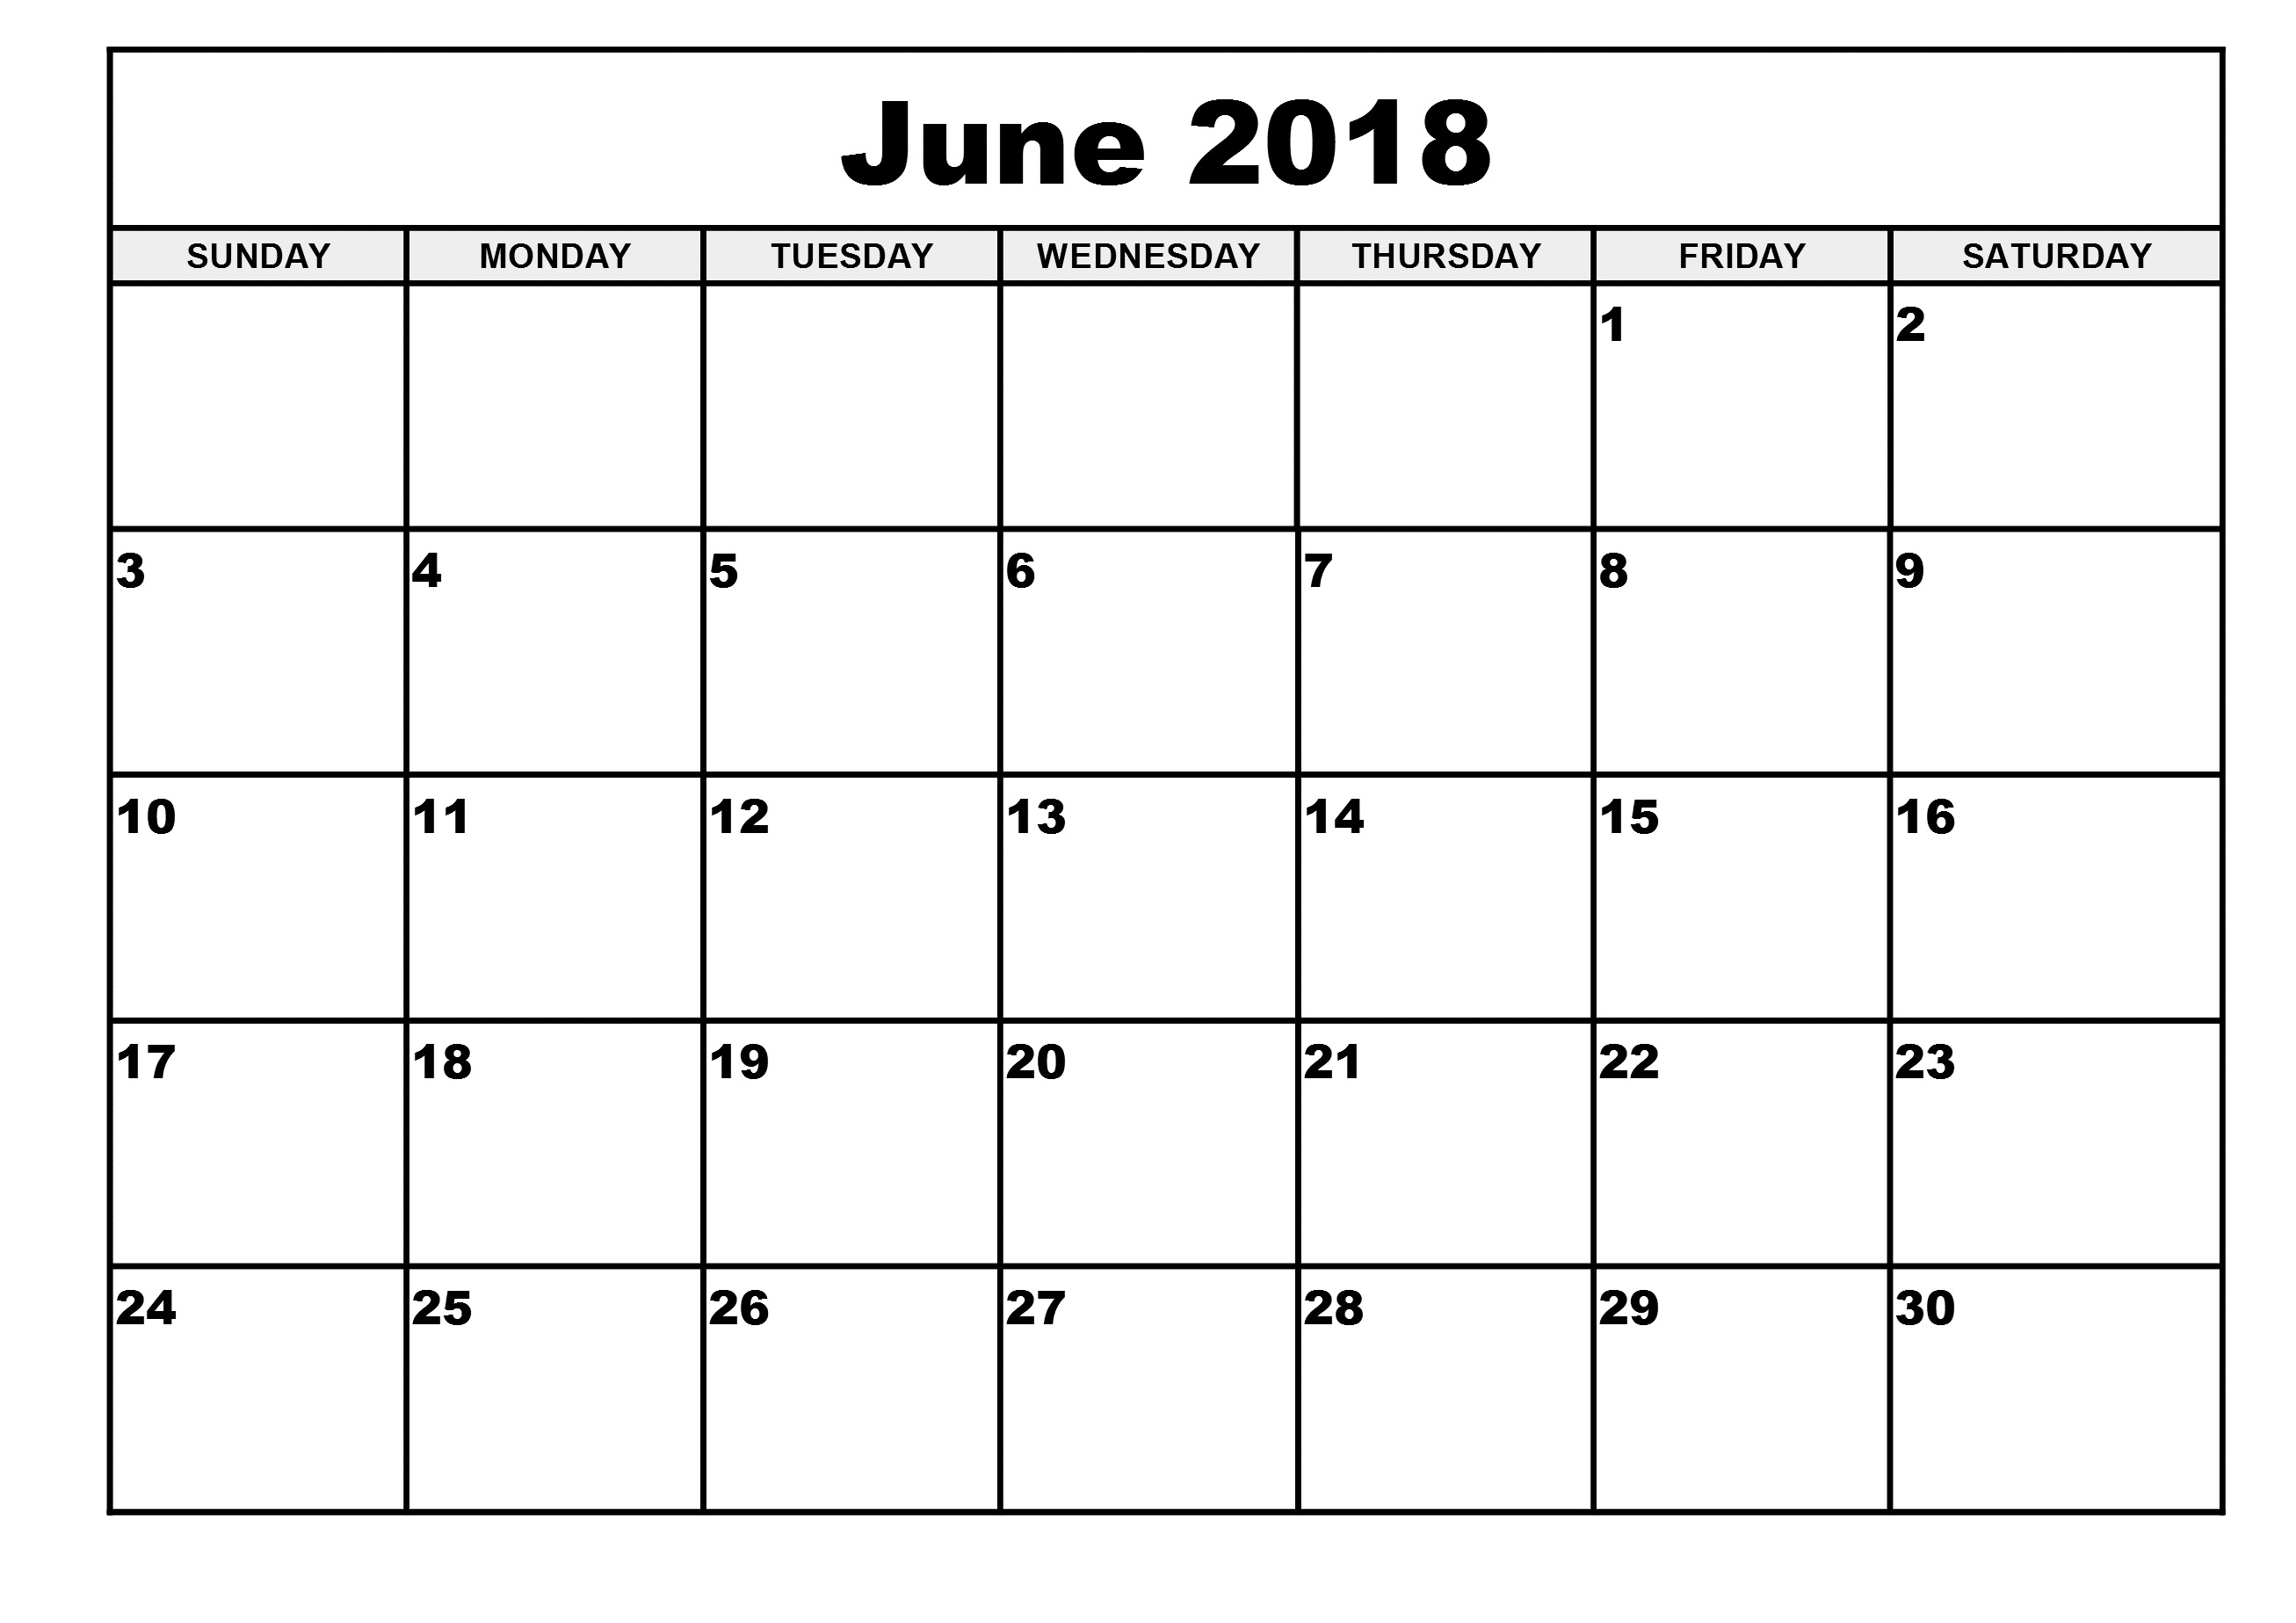 June 2018 Calendar Template Creative Design